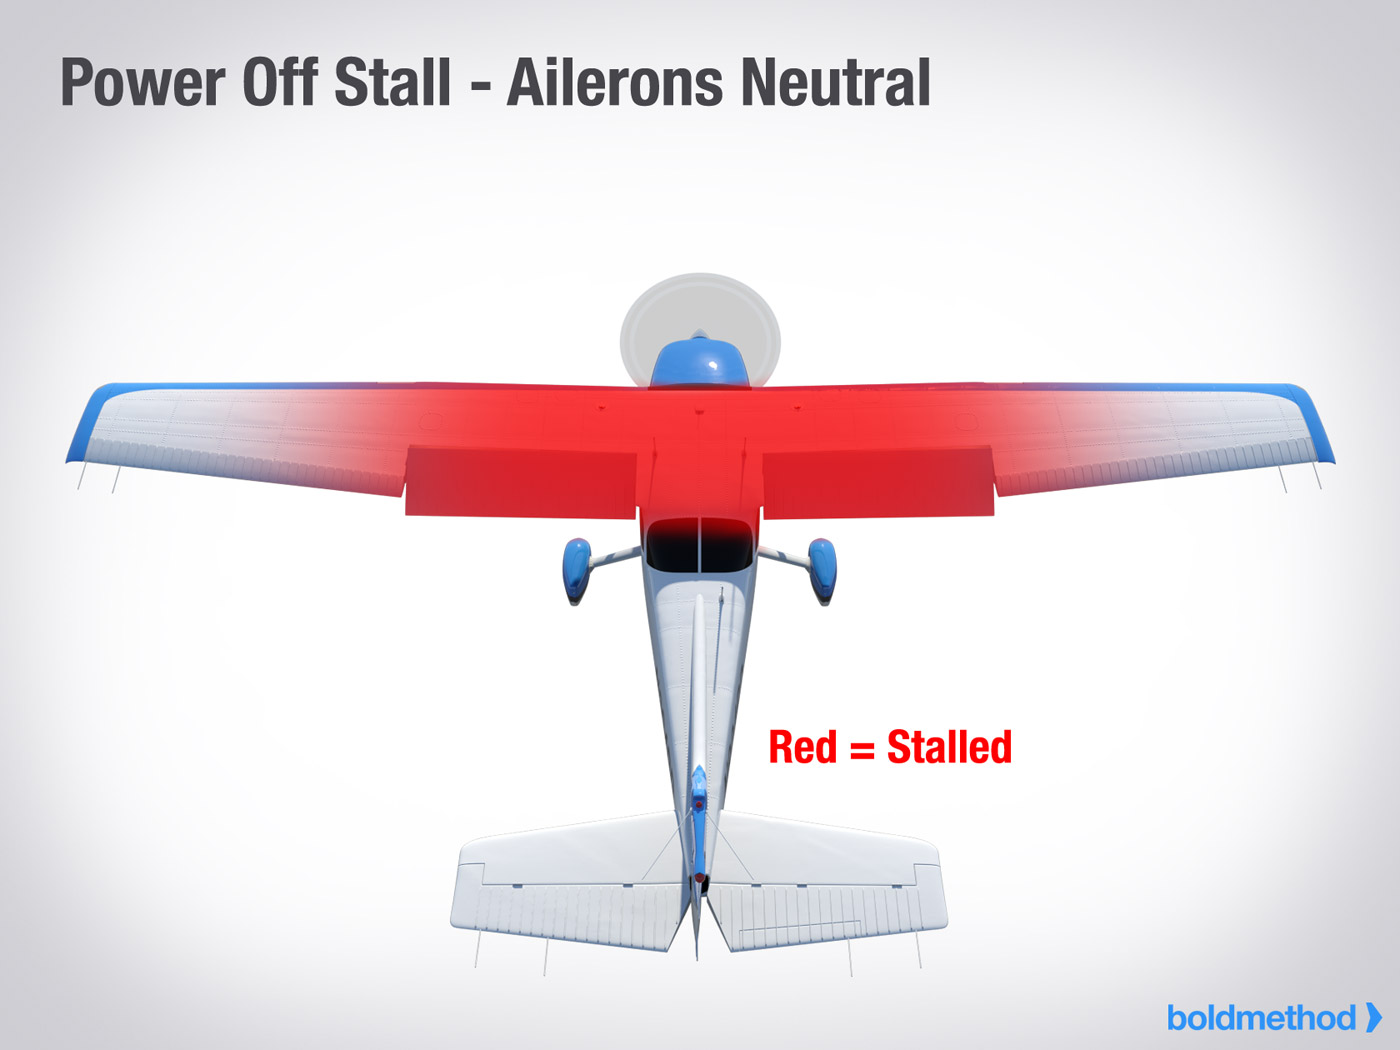 Power-Off Stall - Ailerons Neutral